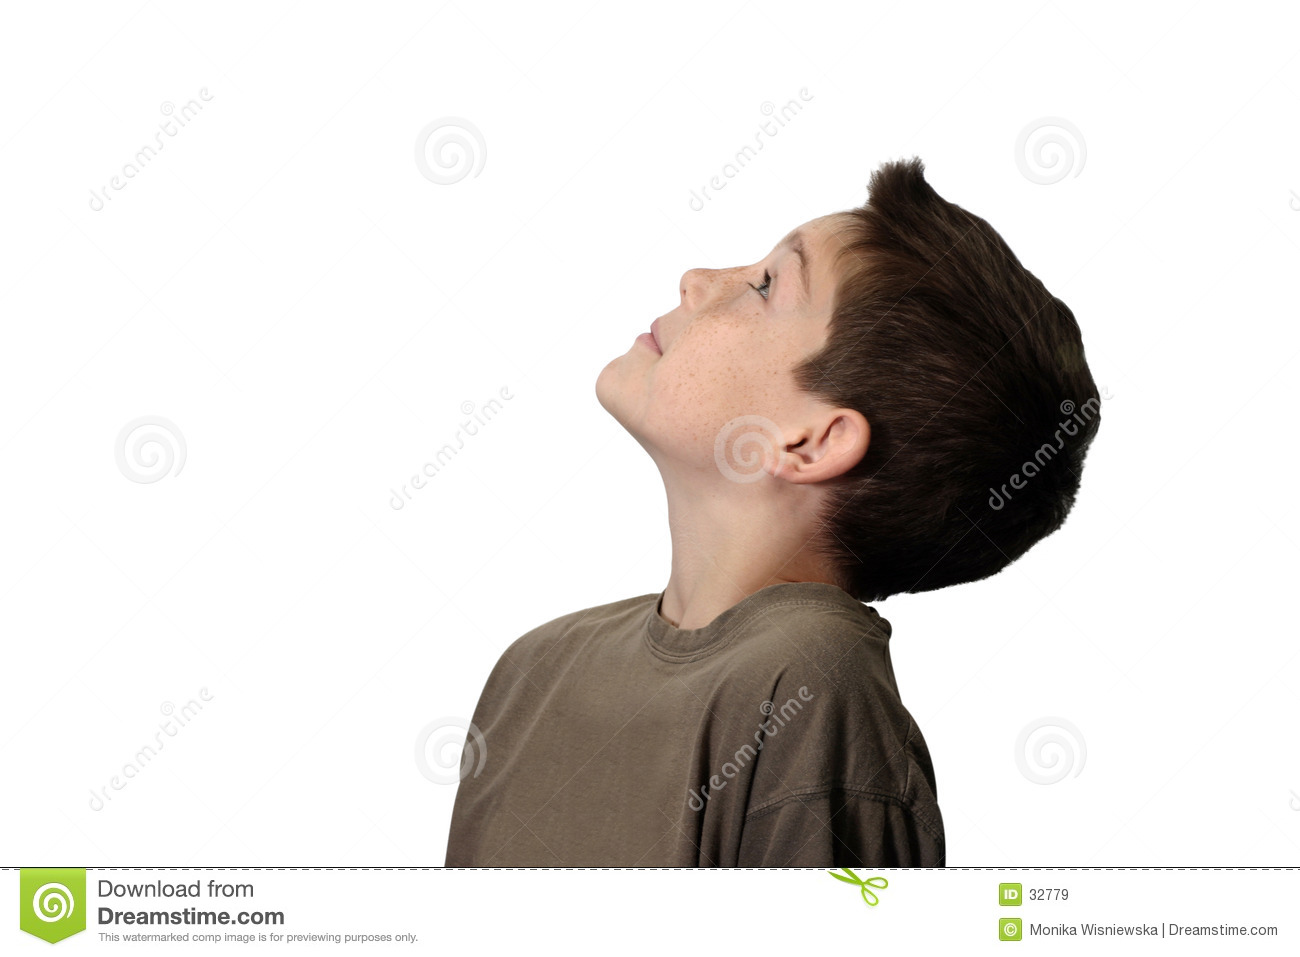 Clipart Bedroom Boy Looking Up Royalty Free Stock Images Image 32779